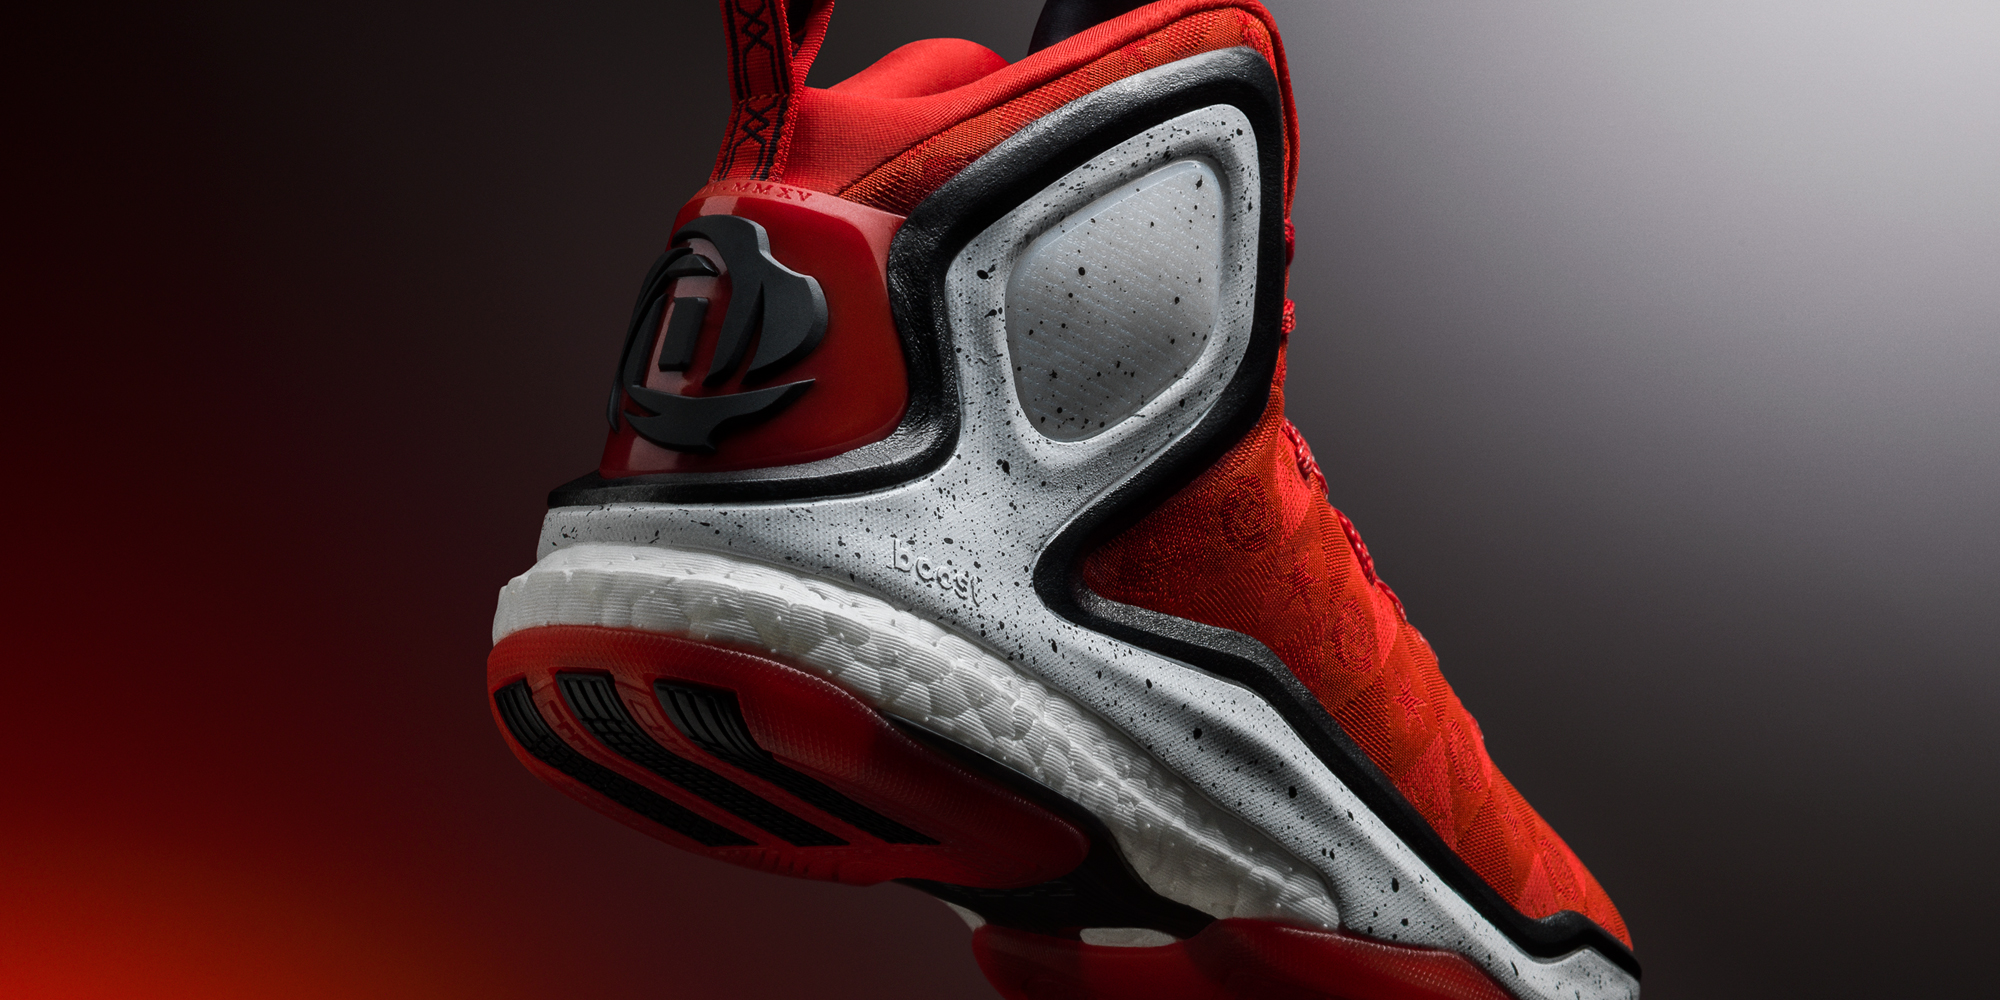 Adidas D Rose 5 los-granados-apartment co uk